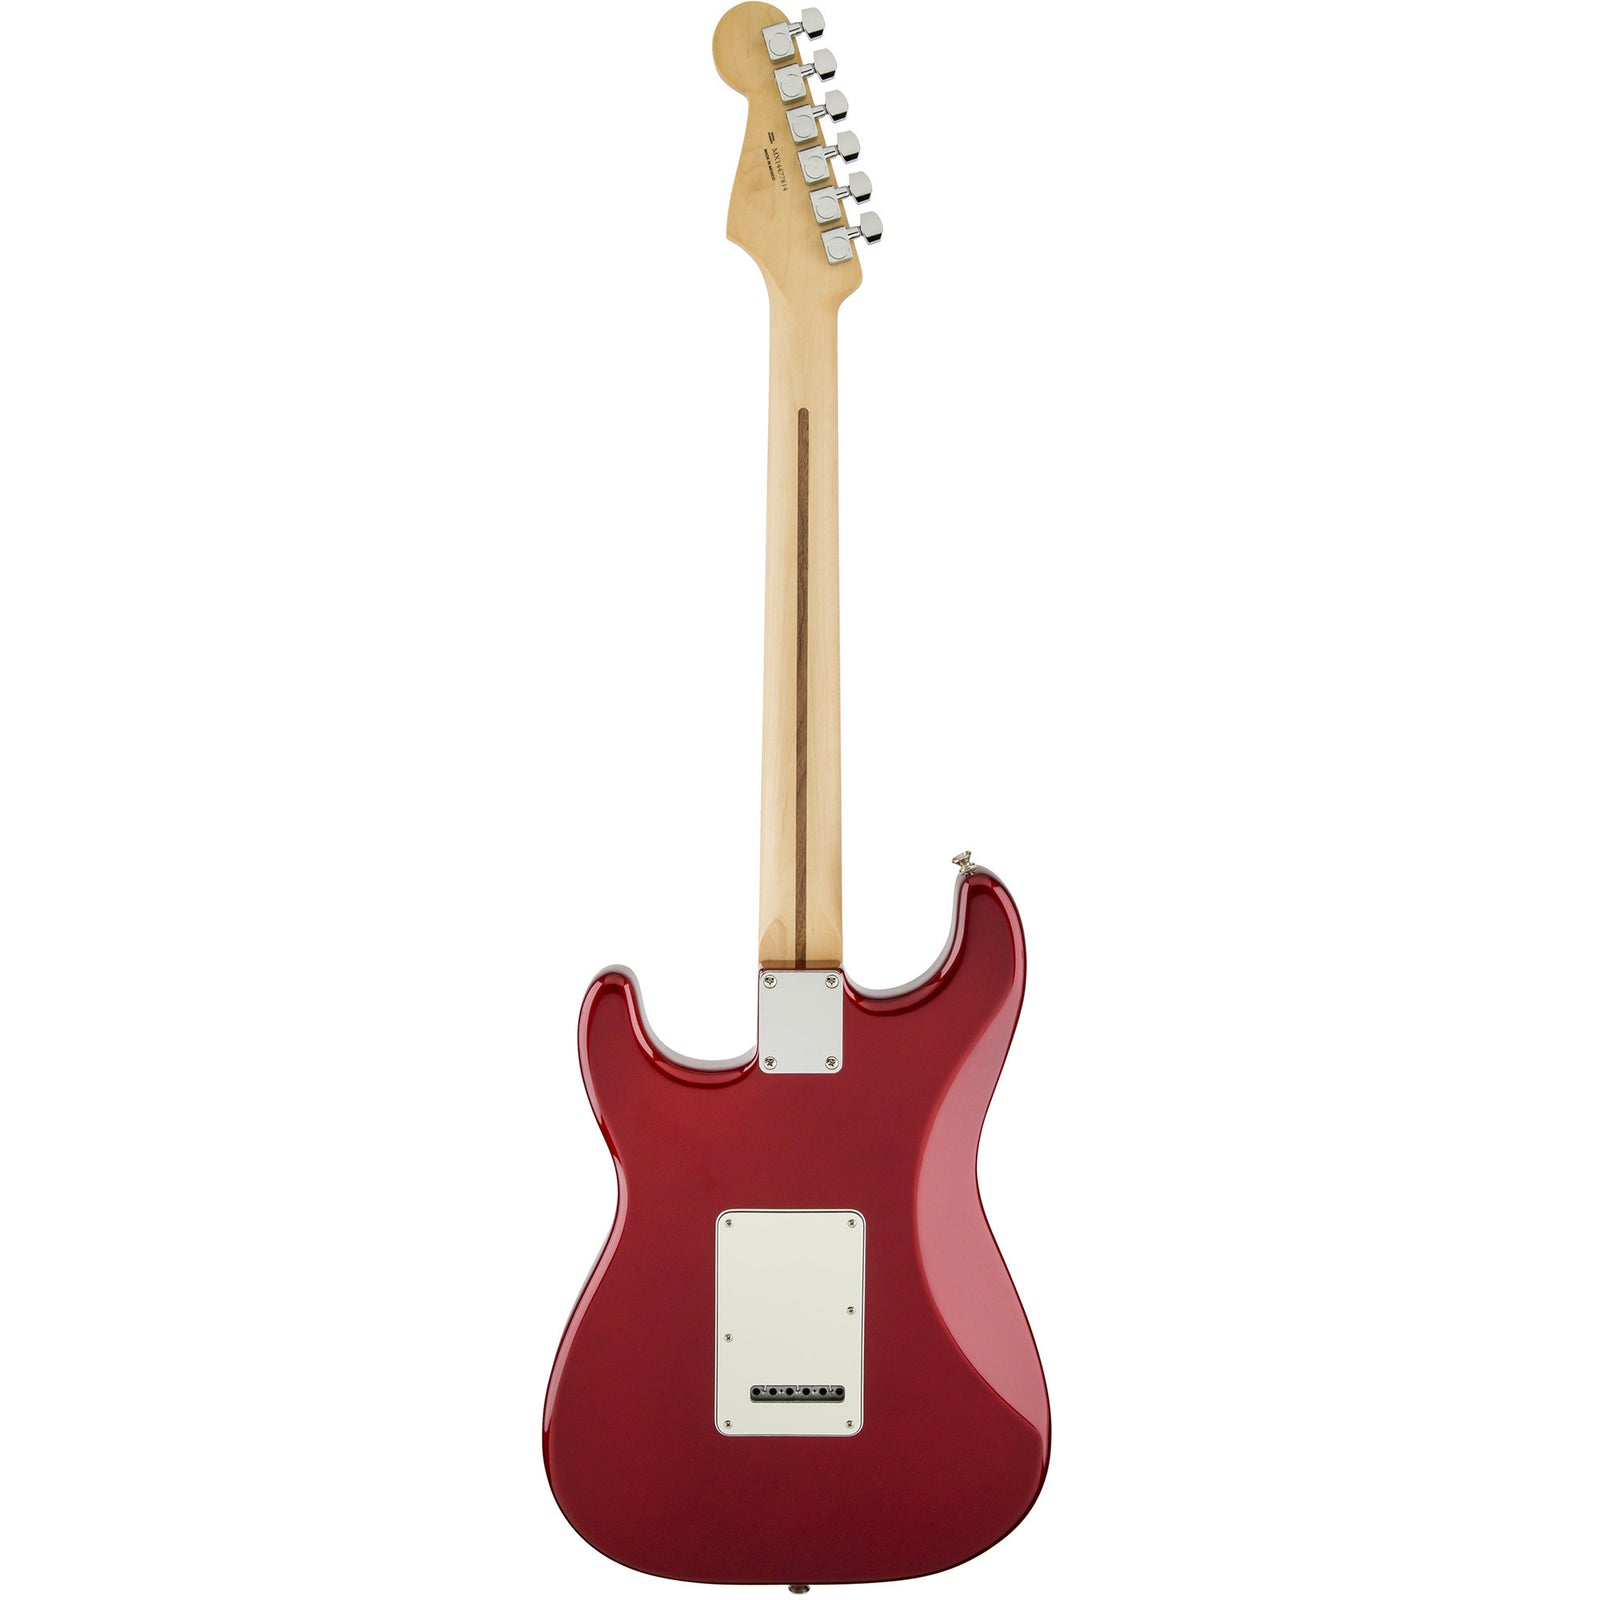 Fender Standard Stratocaster - Rosewood Fingerboard - Candy Apple Red